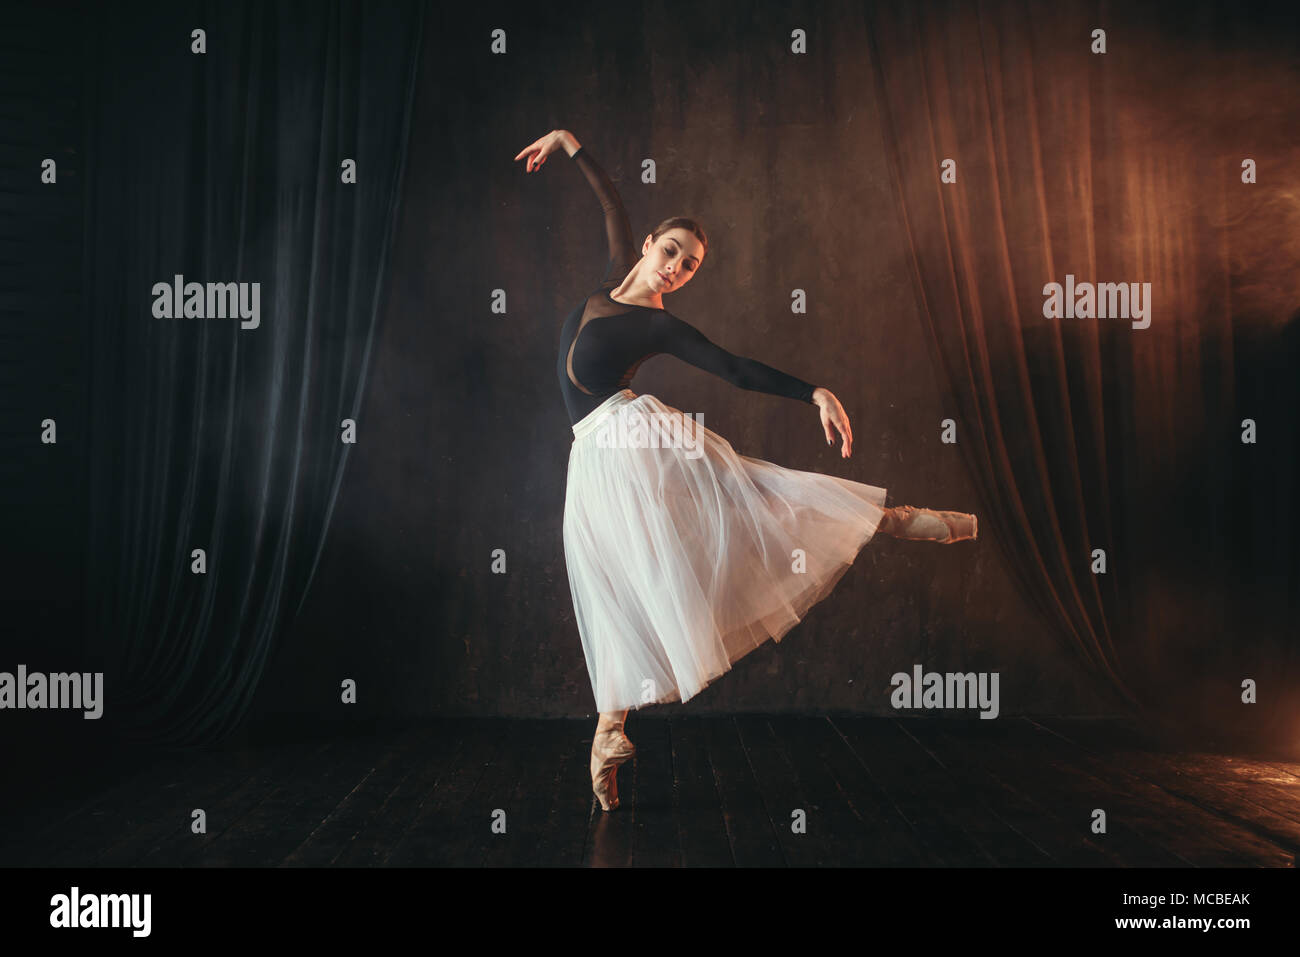 Classical ballet dancer in motion on the stage - Stock Image